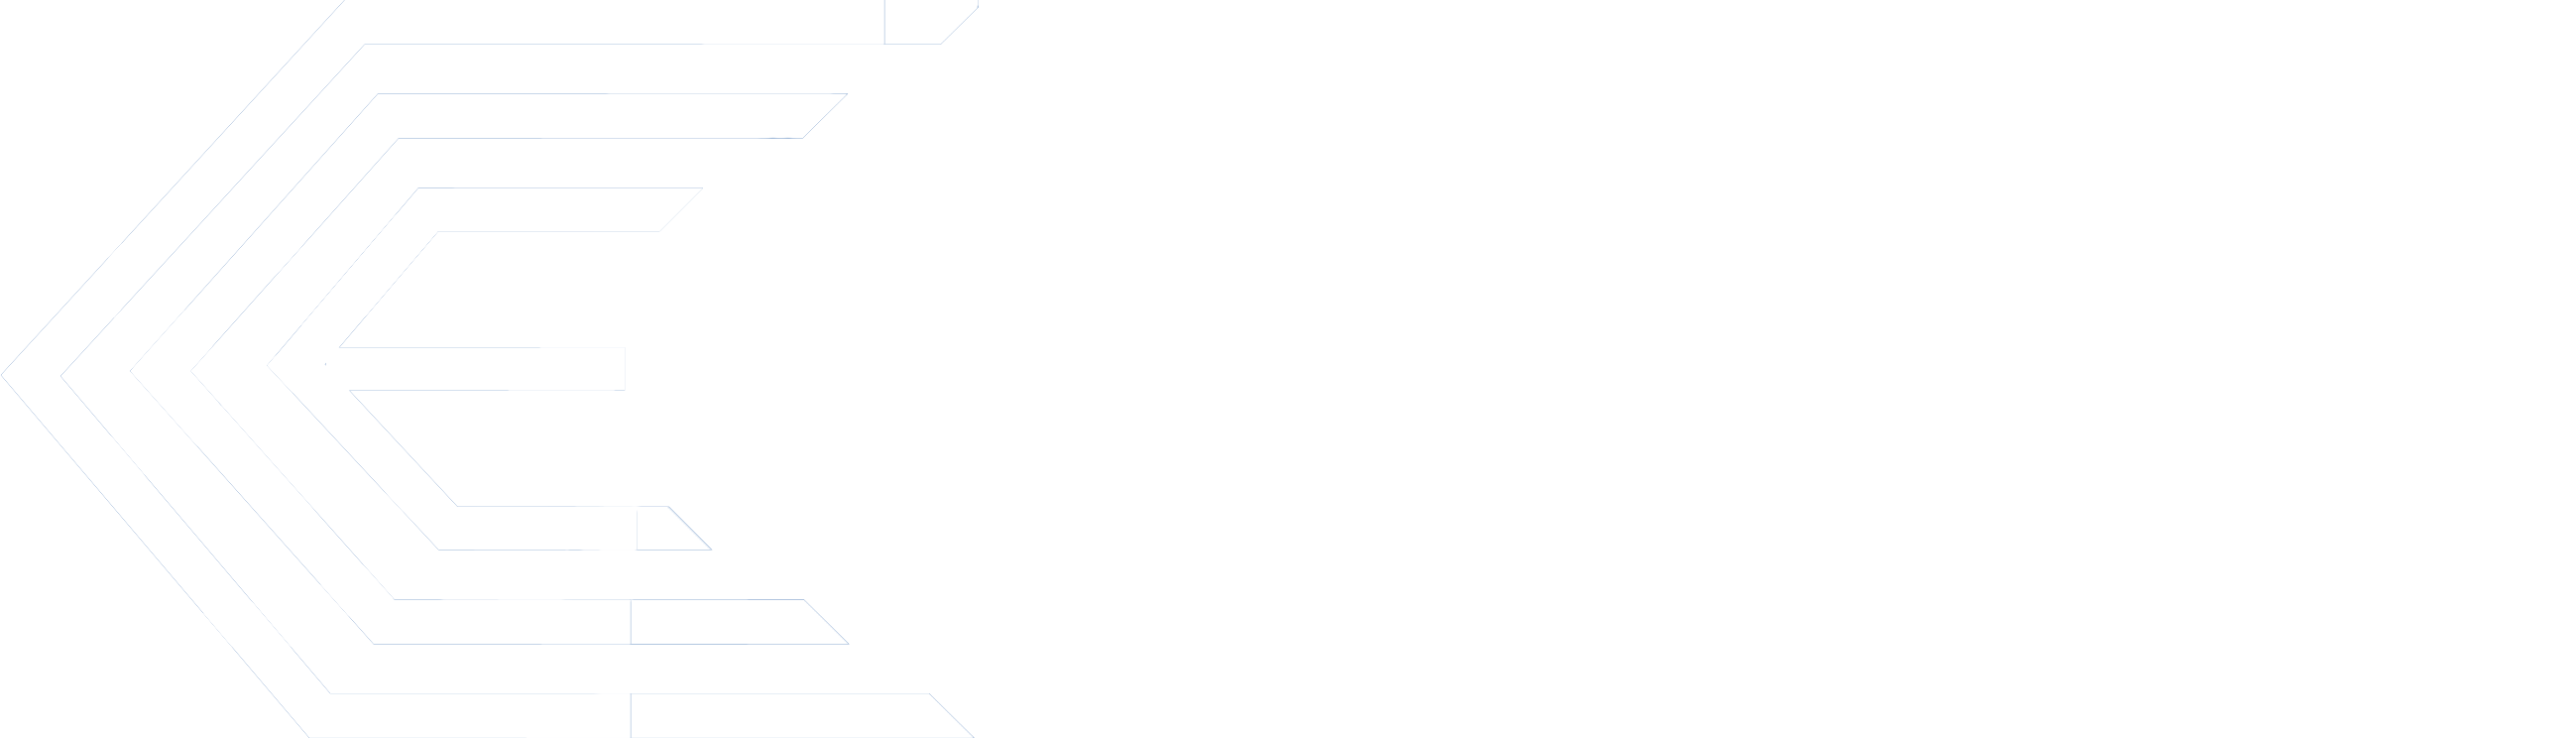 CCE® - Commercial Catering Equipment LLC | Logo